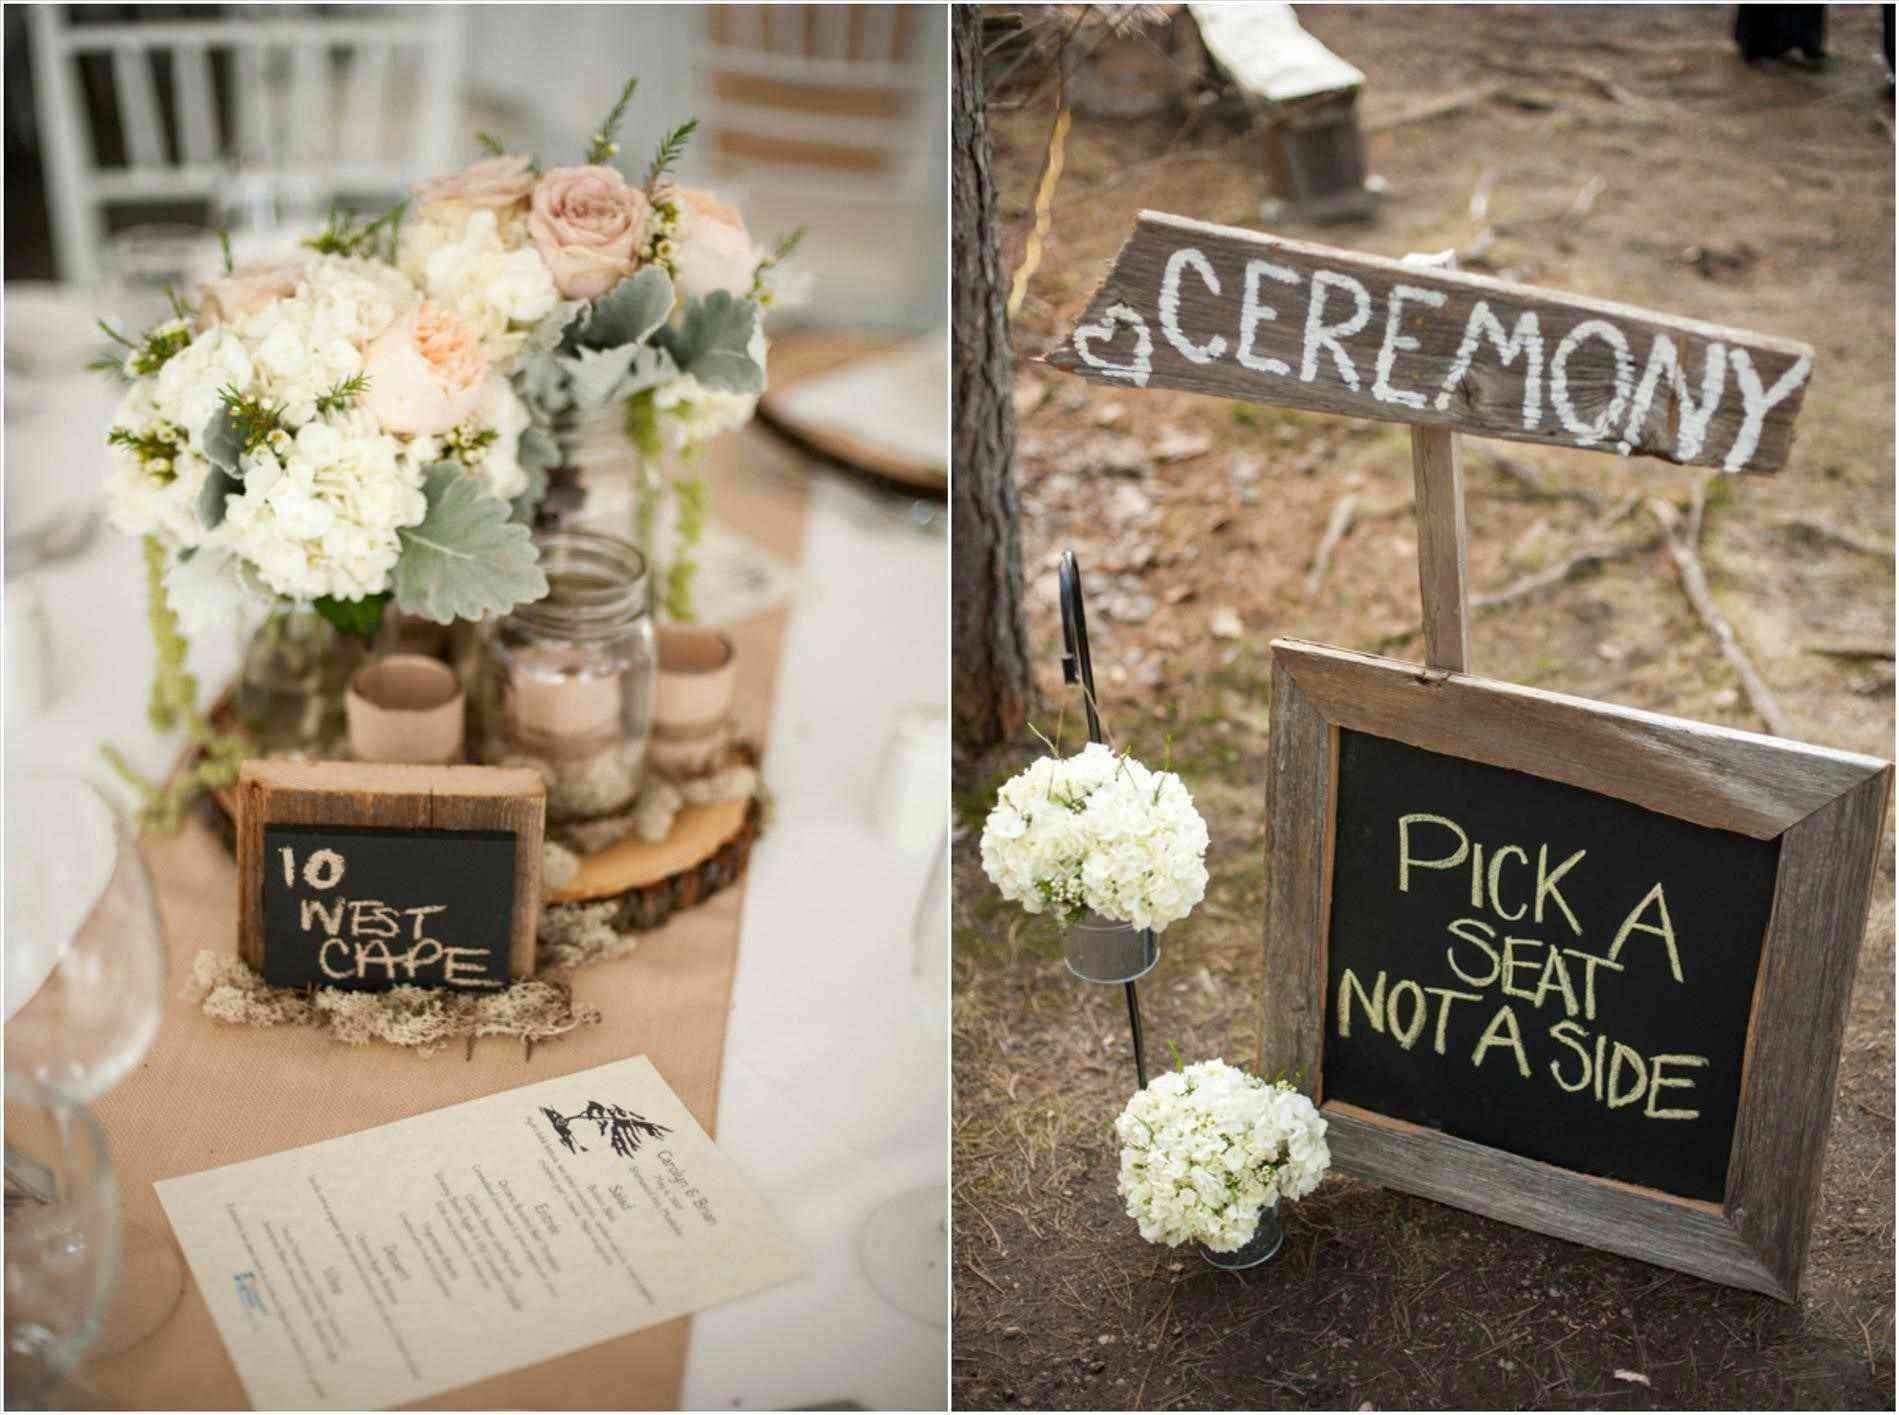 10 Lovely Country Wedding Ideas For Summer summer wedding ideas fresh wedding themes ideas pinterest rustic 2020